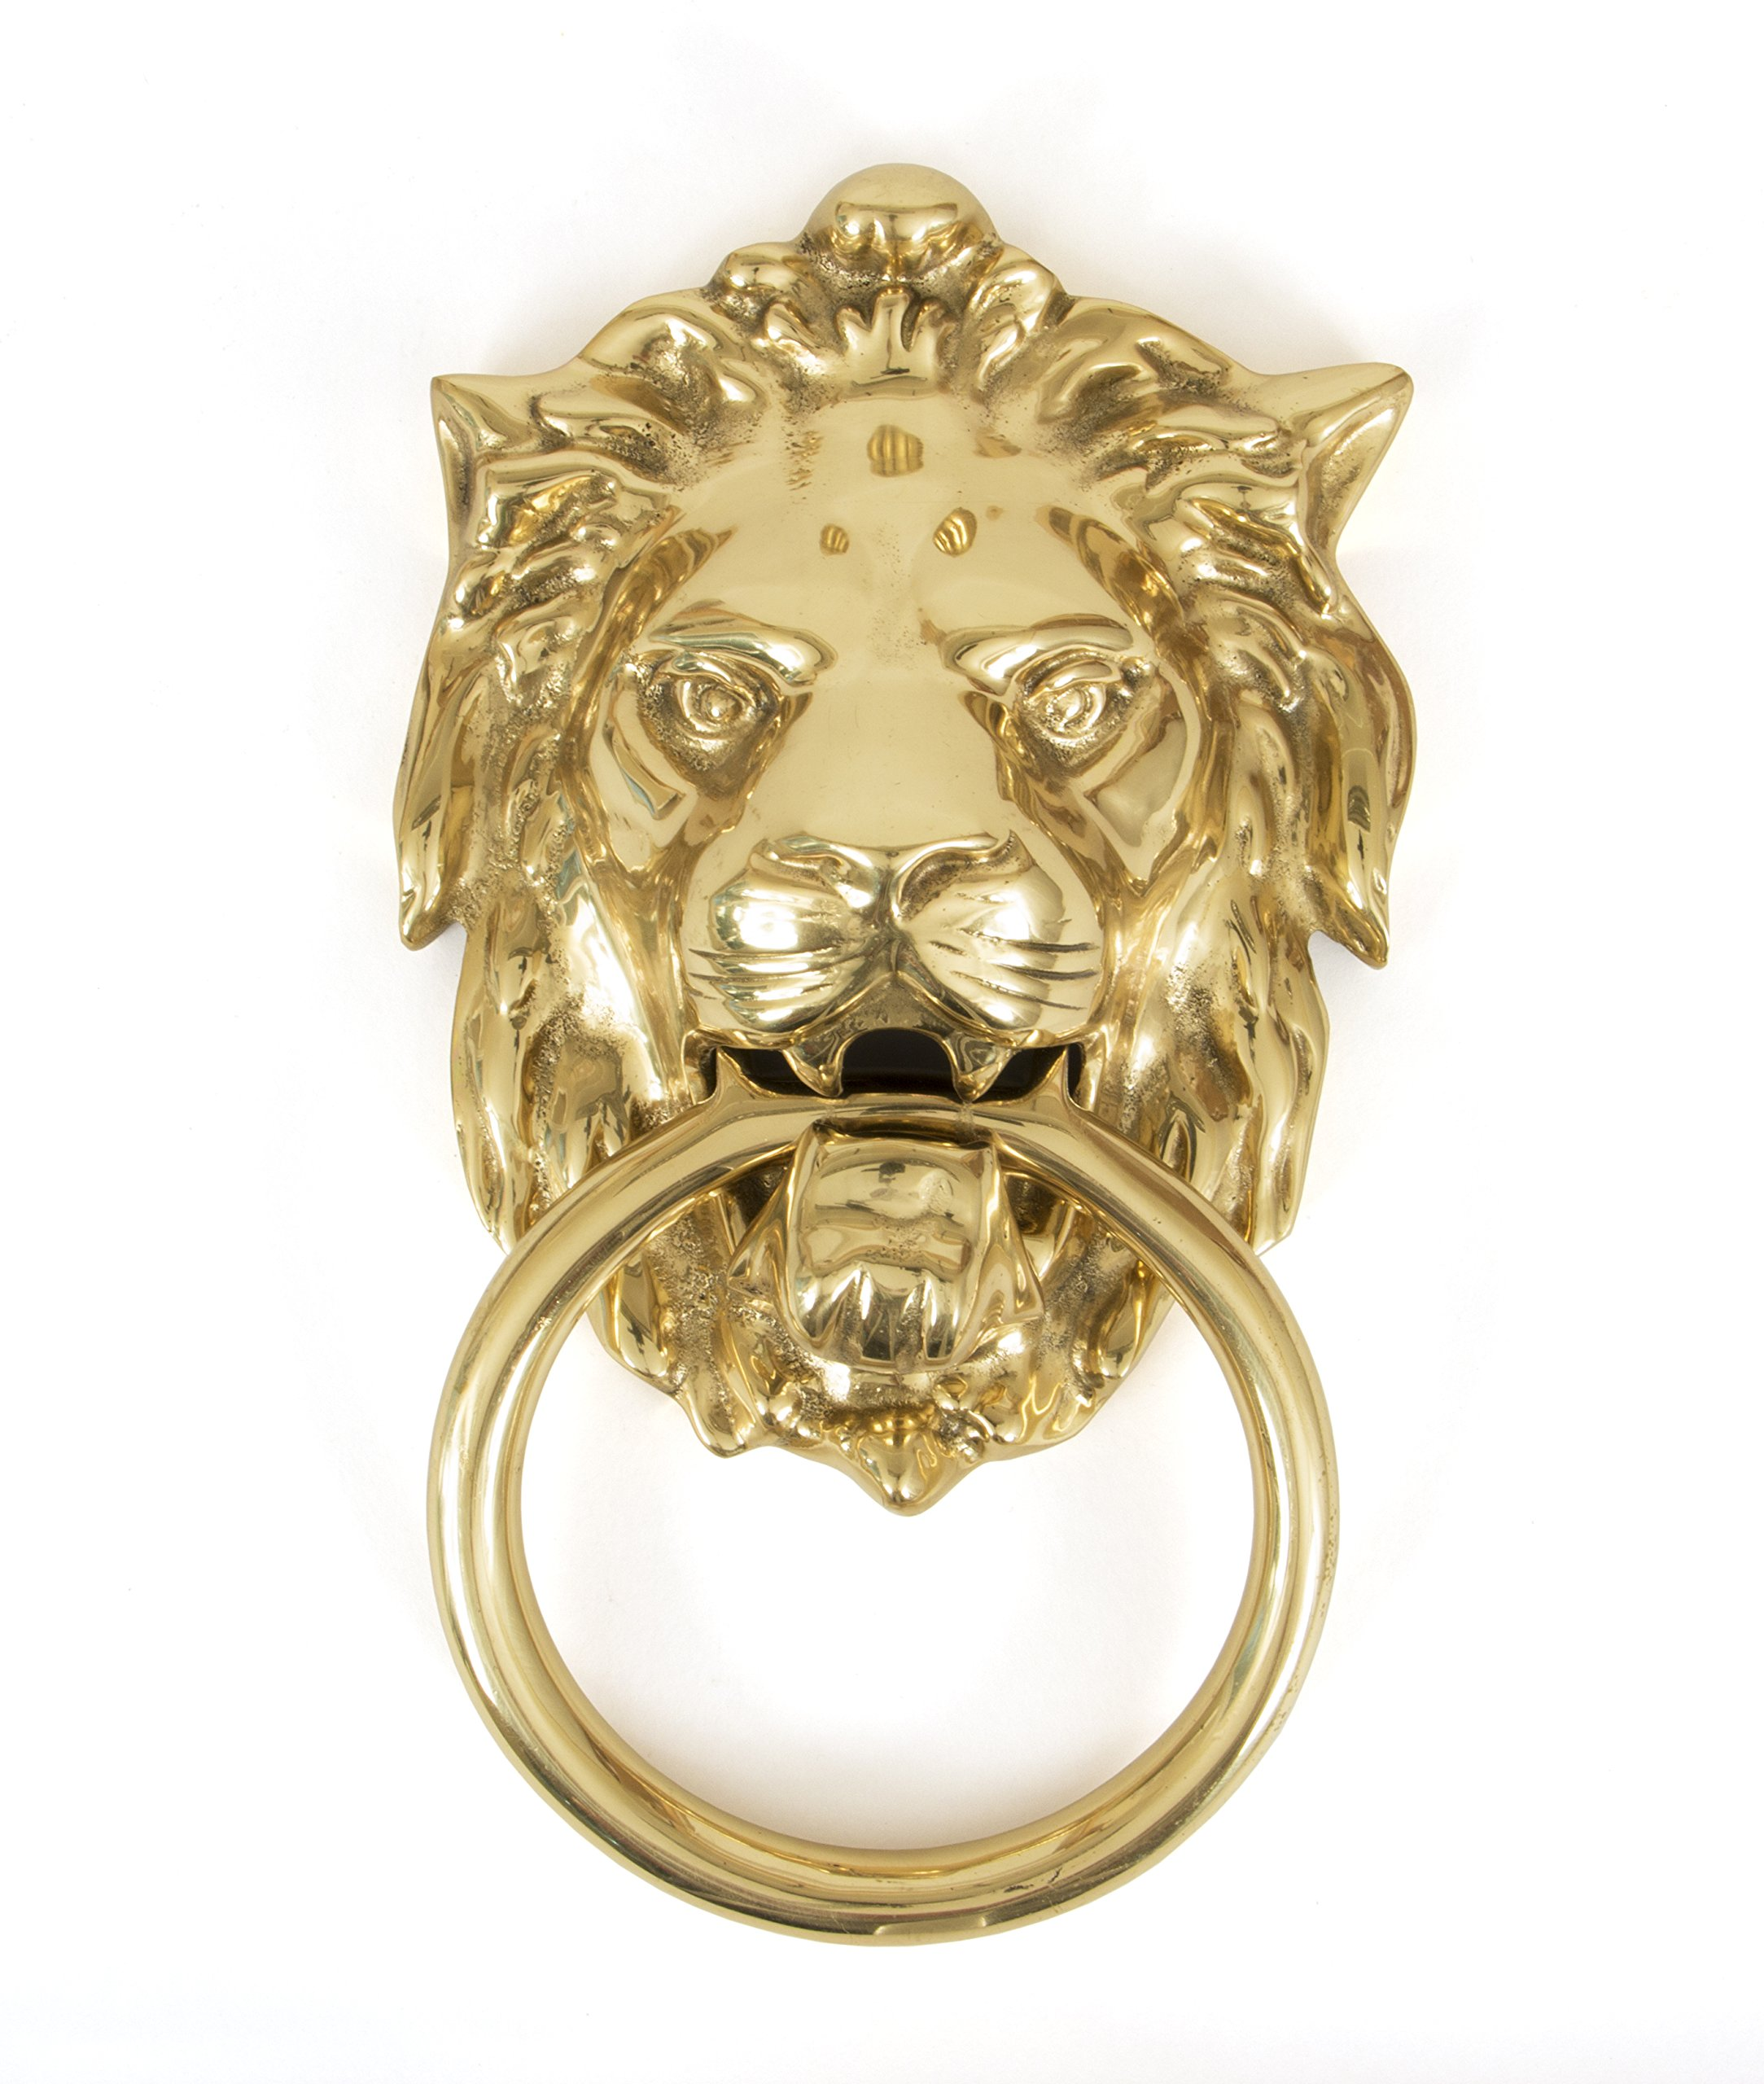 From the Anvil 33020 Lion's Head Door Knocker - Polished Brass